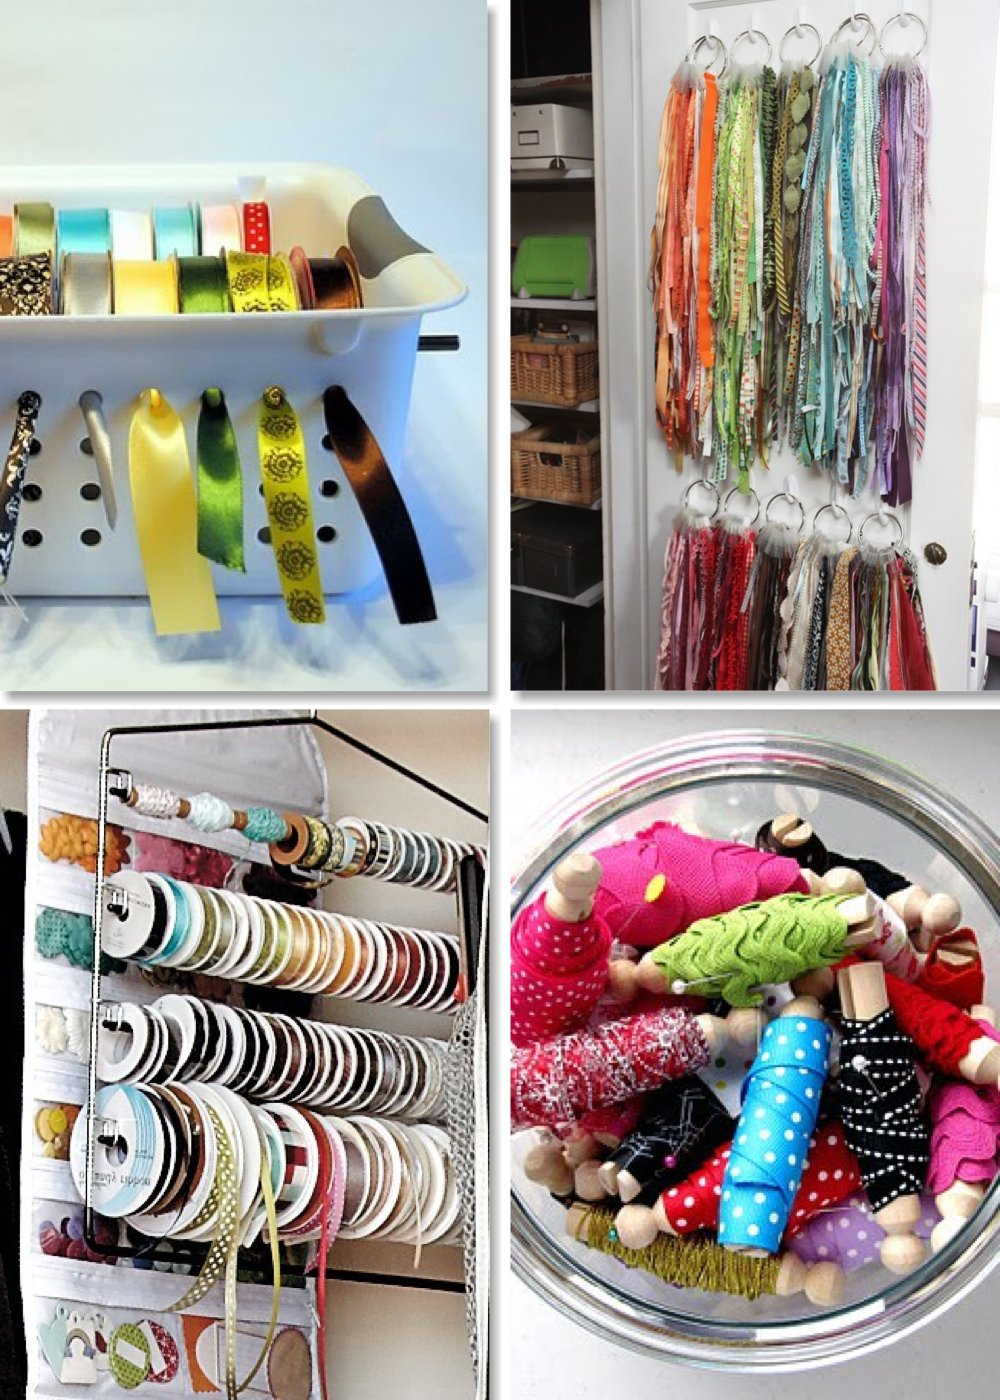 Attirant I Found Lots Of Clever Storage Ideas All Over The Blog O Sphere And  Pinterestu2026.great Ideas Like These!